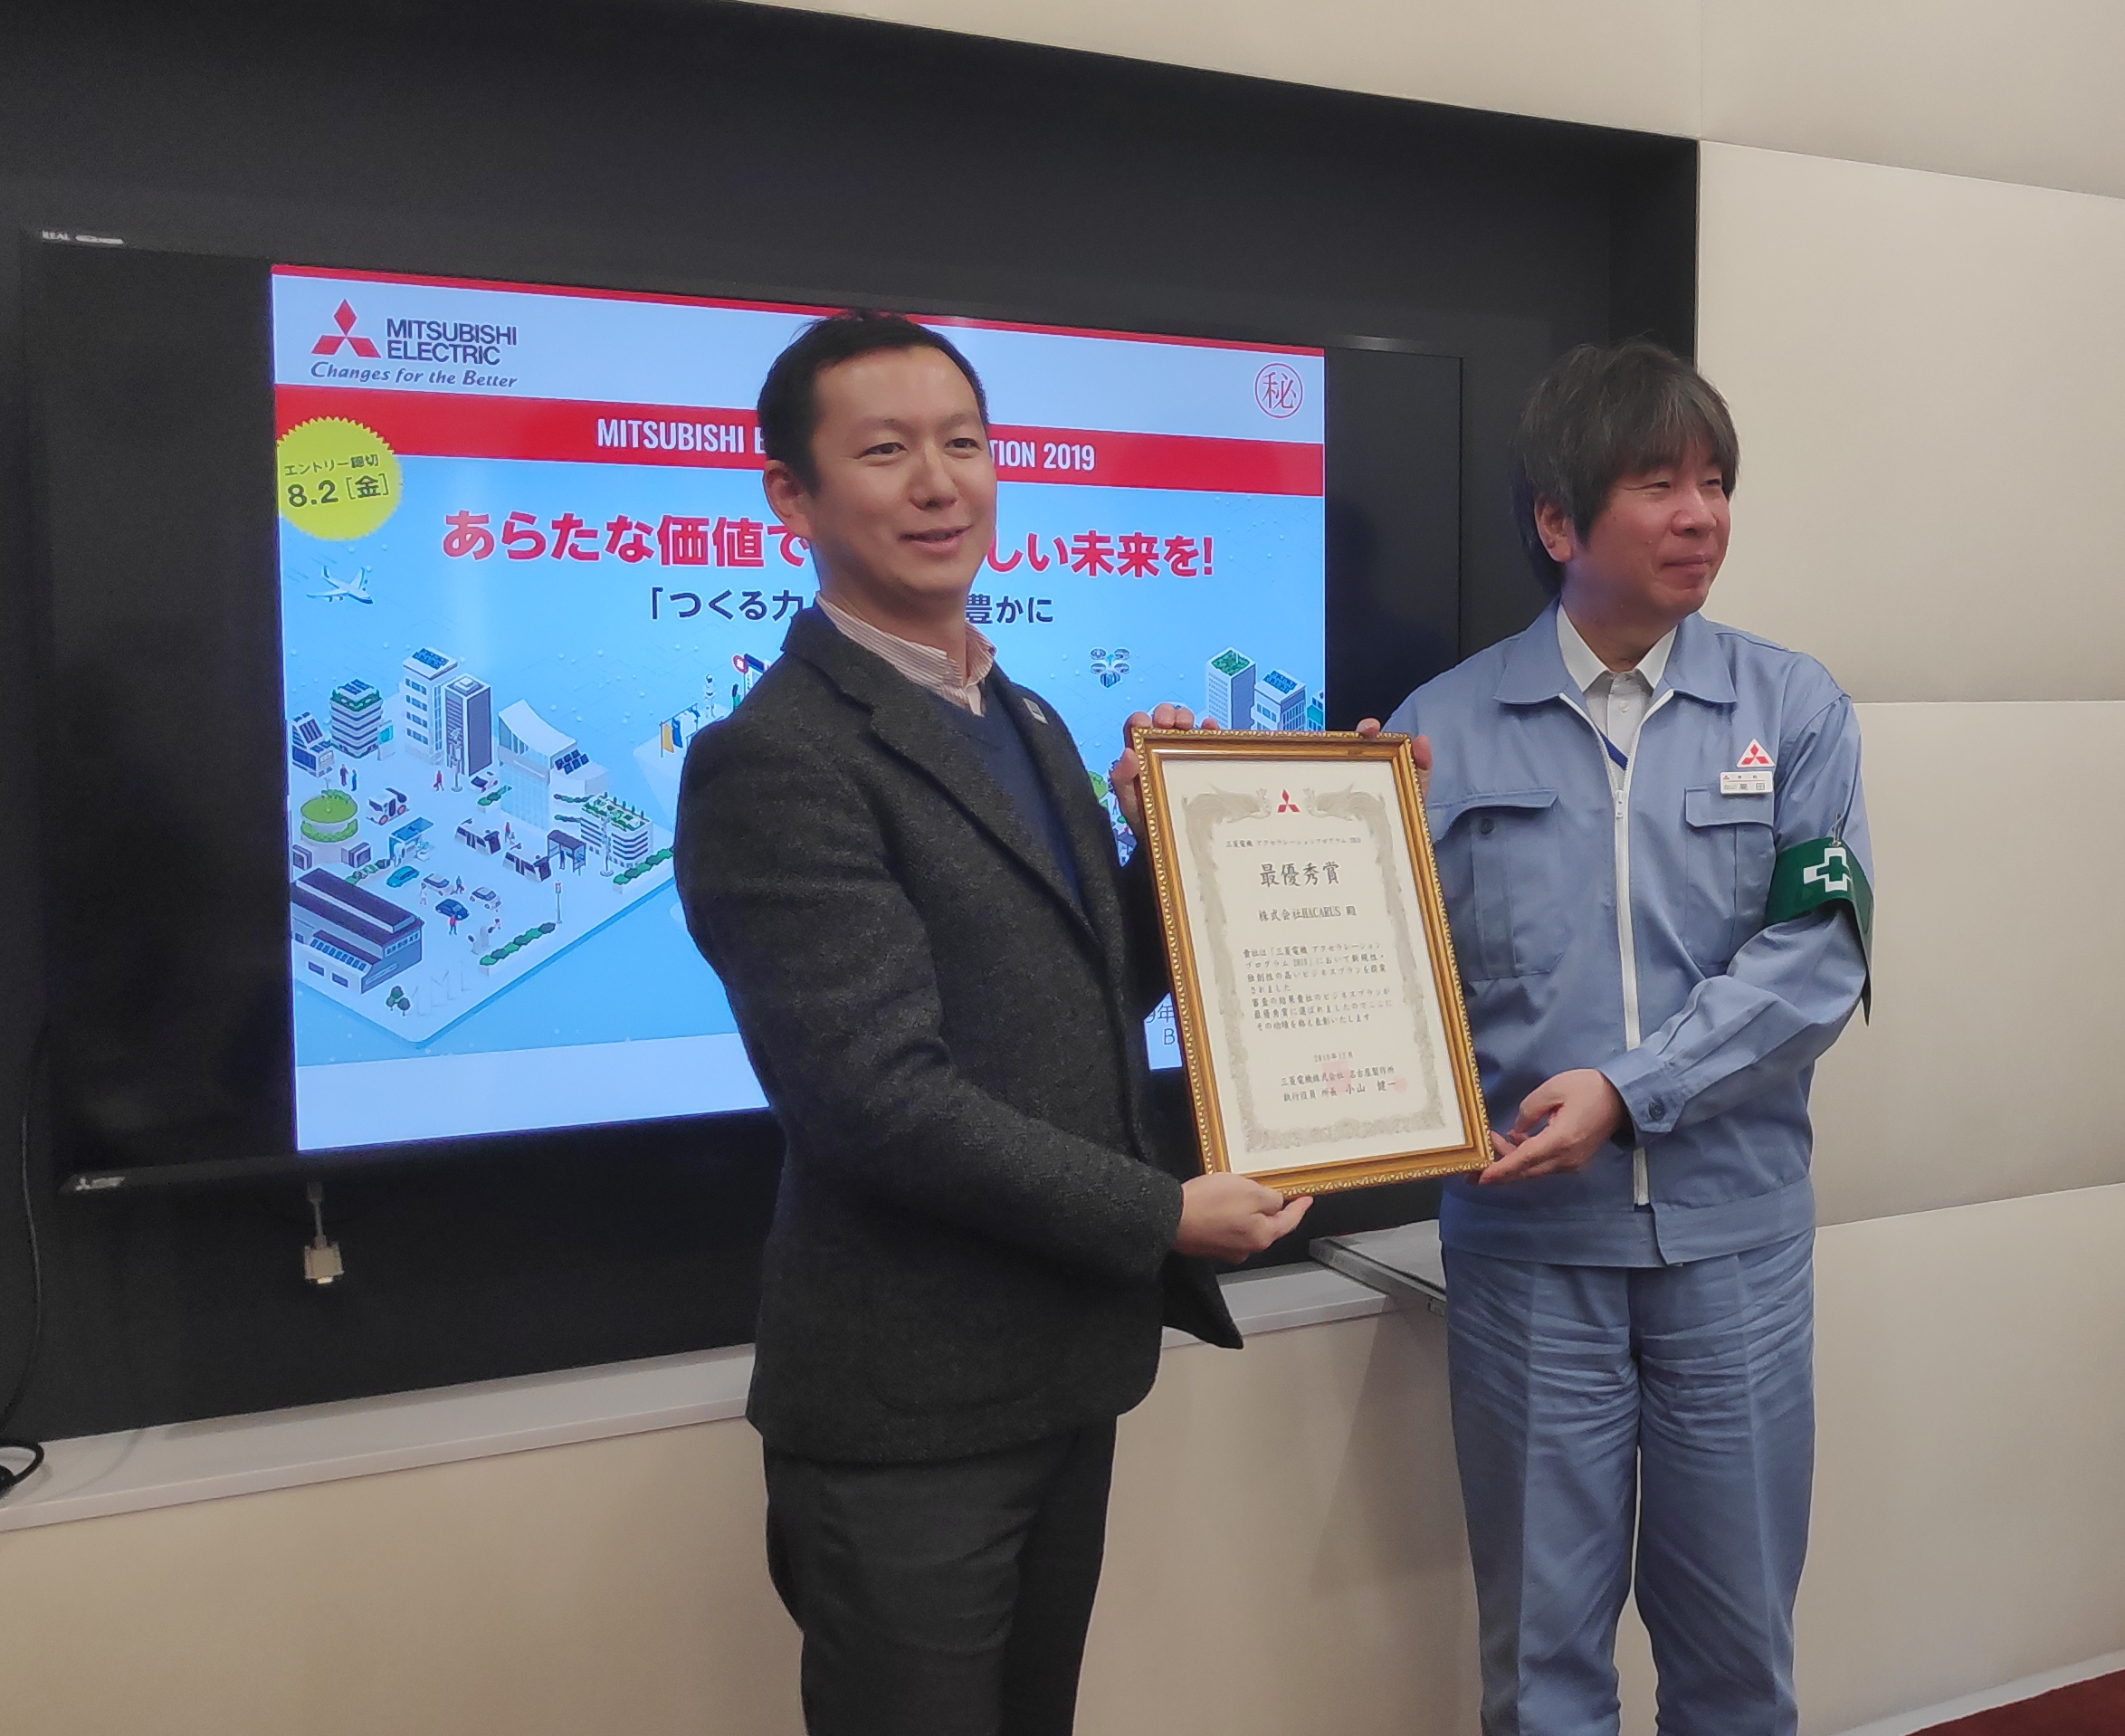 HACARUS Is A Mitsubishi Electric Acceleration Program 2019 Winner